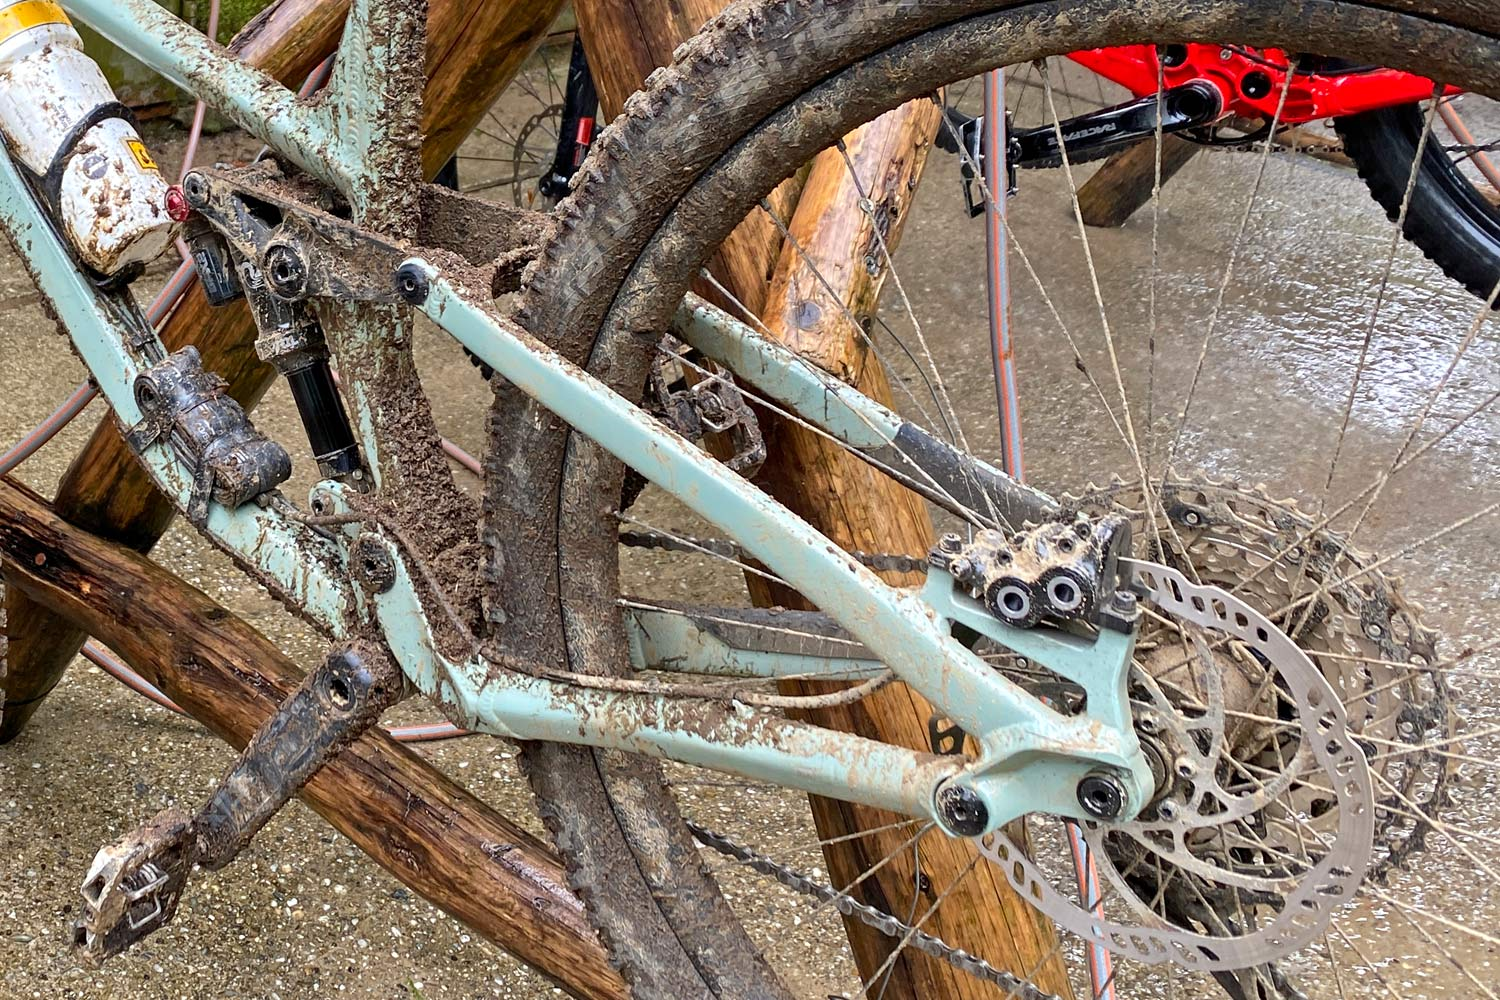 Privateer 141 all-mountain trail bike, affordable alloy 29er trail enduro all-mountain bike, rear non-driveside